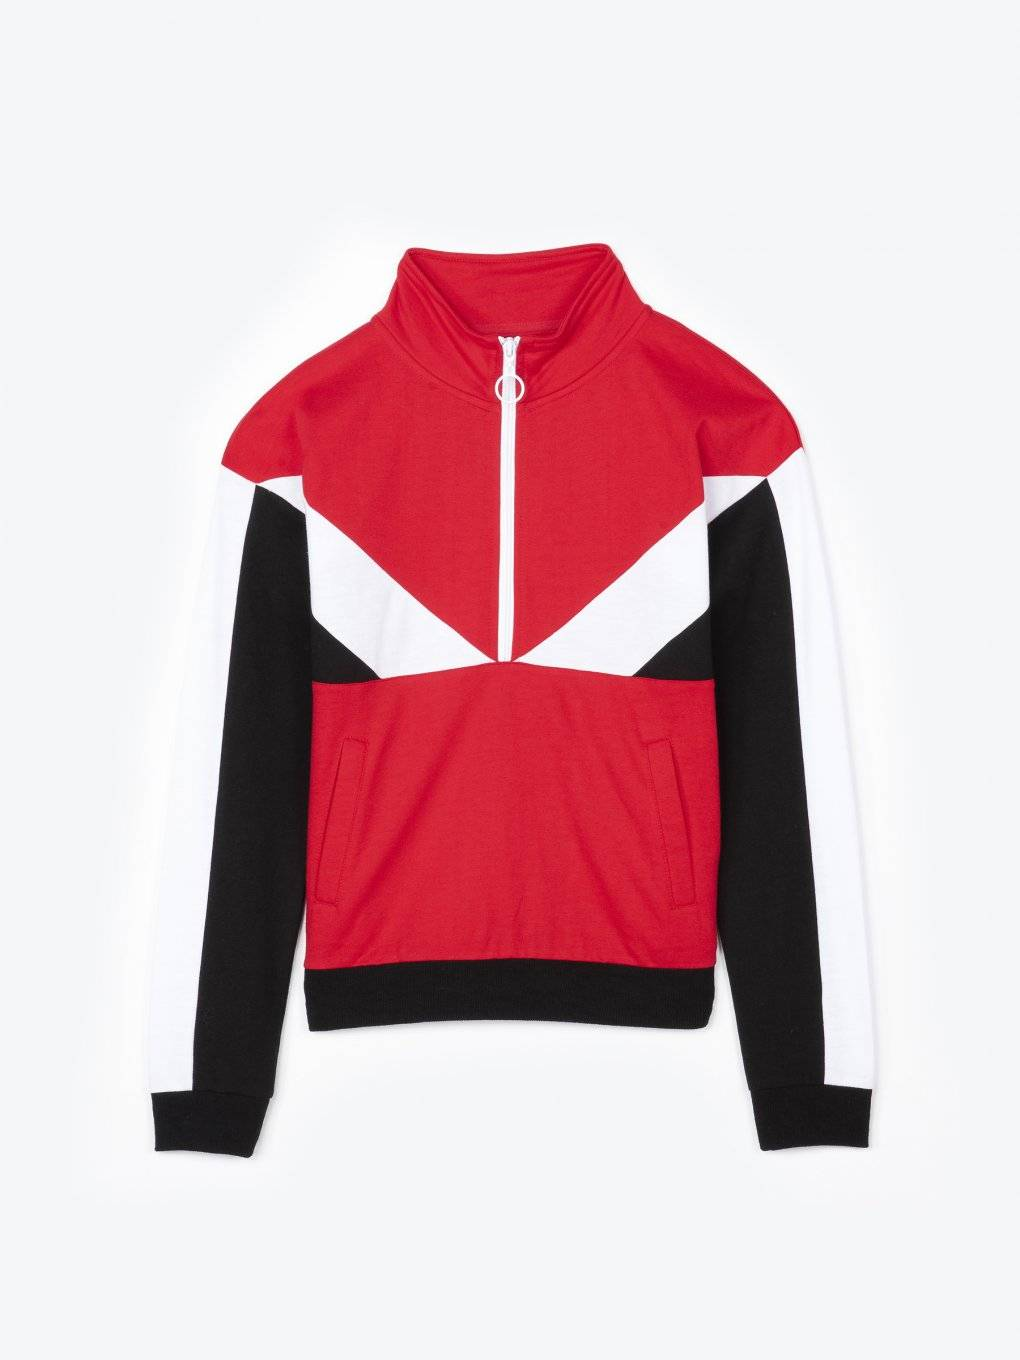 Panelled sweatshirt with zipper